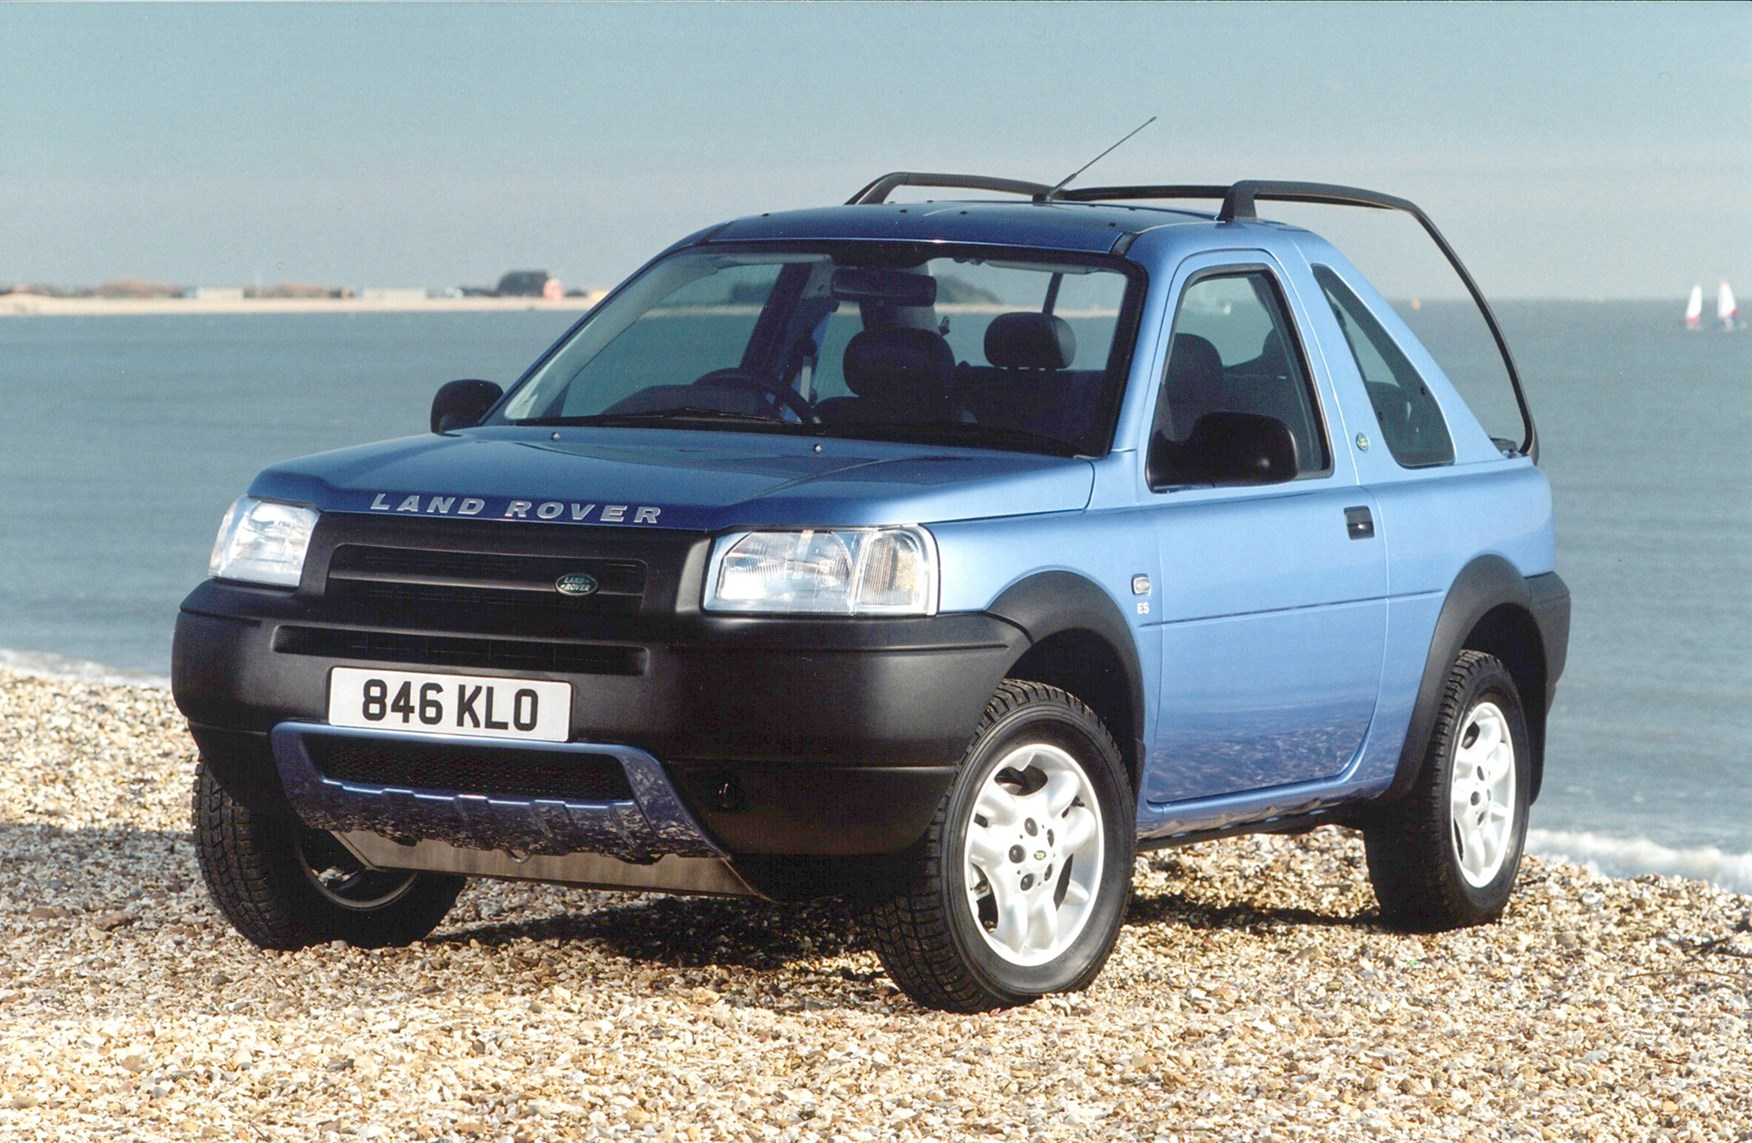 Toyota Build And Price >> Used Land Rover Freelander Softback (1997 - 2003) Review ...